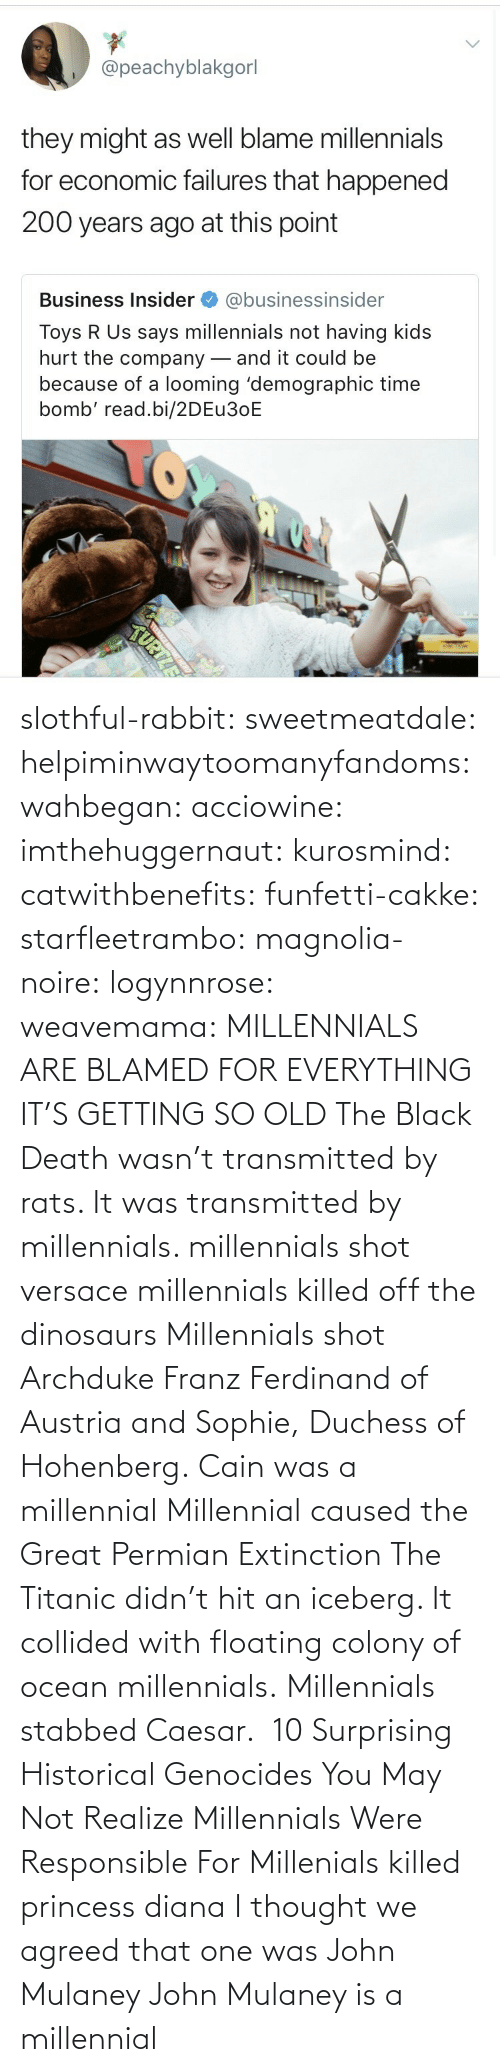 Historical: slothful-rabbit: sweetmeatdale:  helpiminwaytoomanyfandoms:   wahbegan:  acciowine:  imthehuggernaut:  kurosmind:   catwithbenefits:  funfetti-cakke:  starfleetrambo:  magnolia-noire:  logynnrose:  weavemama:  MILLENNIALS ARE BLAMED FOR EVERYTHING IT'S GETTING SO OLD  The Black Death wasn't transmitted by rats. It was transmitted by millennials.    millennials shot versace   millennials killed off the dinosaurs    Millennials shot Archduke Franz Ferdinand of Austria and Sophie, Duchess of Hohenberg.   Cain was a millennial  Millennial caused the Great Permian Extinction   The Titanic didn't hit an iceberg. It collided with floating colony of ocean millennials.  Millennials stabbed Caesar.   10 Surprising Historical Genocides You May Not Realize Millennials Were Responsible For    Millenials killed princess diana    I thought we agreed that one was John Mulaney     John Mulaney is a millennial